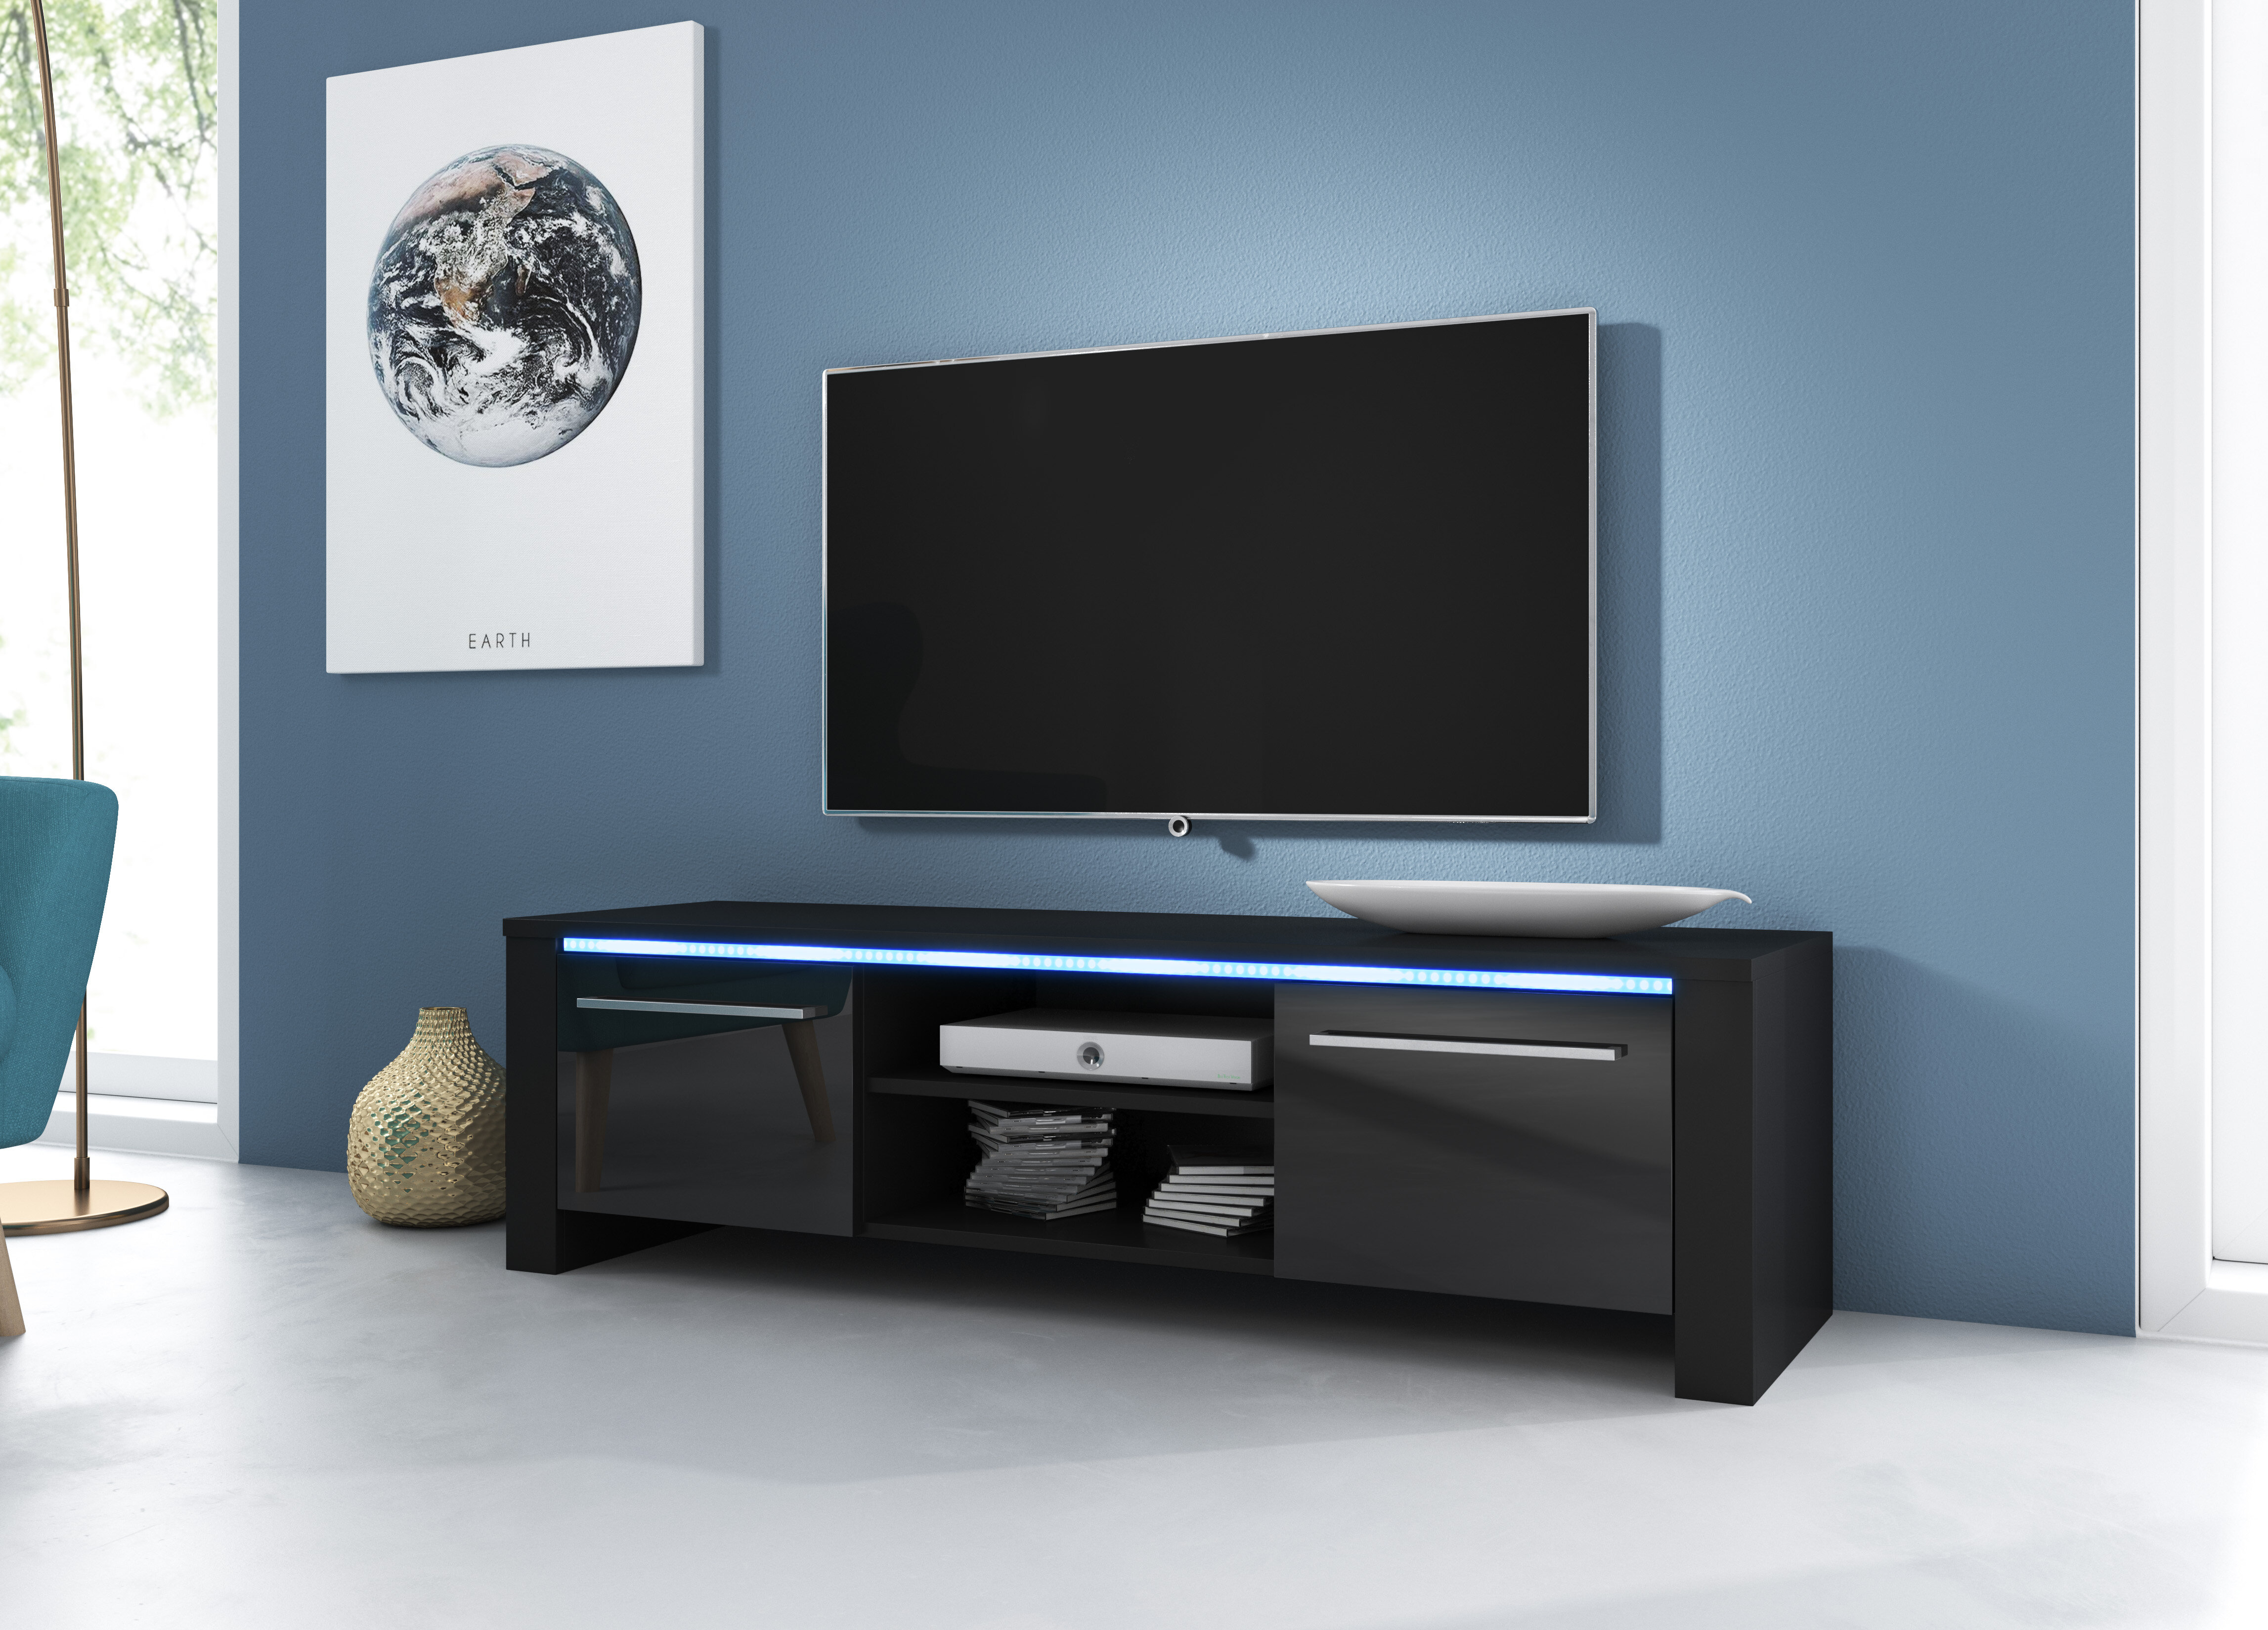 Metro Lane Battle Tv Stand For Tvs Up To 55 With Led Lighting Reviews Wayfair Co Uk